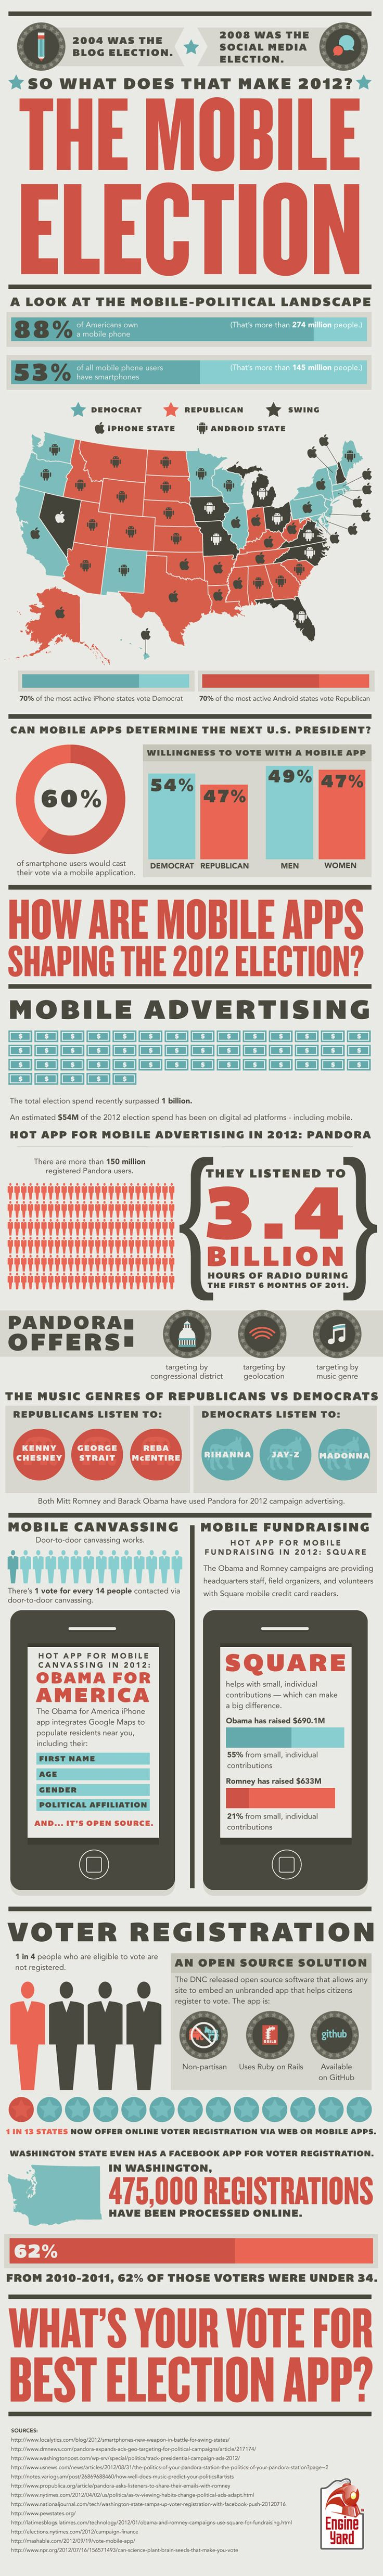 THE MOBILE ELECTION http://mashable.com/2012/10/09/mobile-election-2012-infographic/ Marketing Sociologist @phoenixrichard